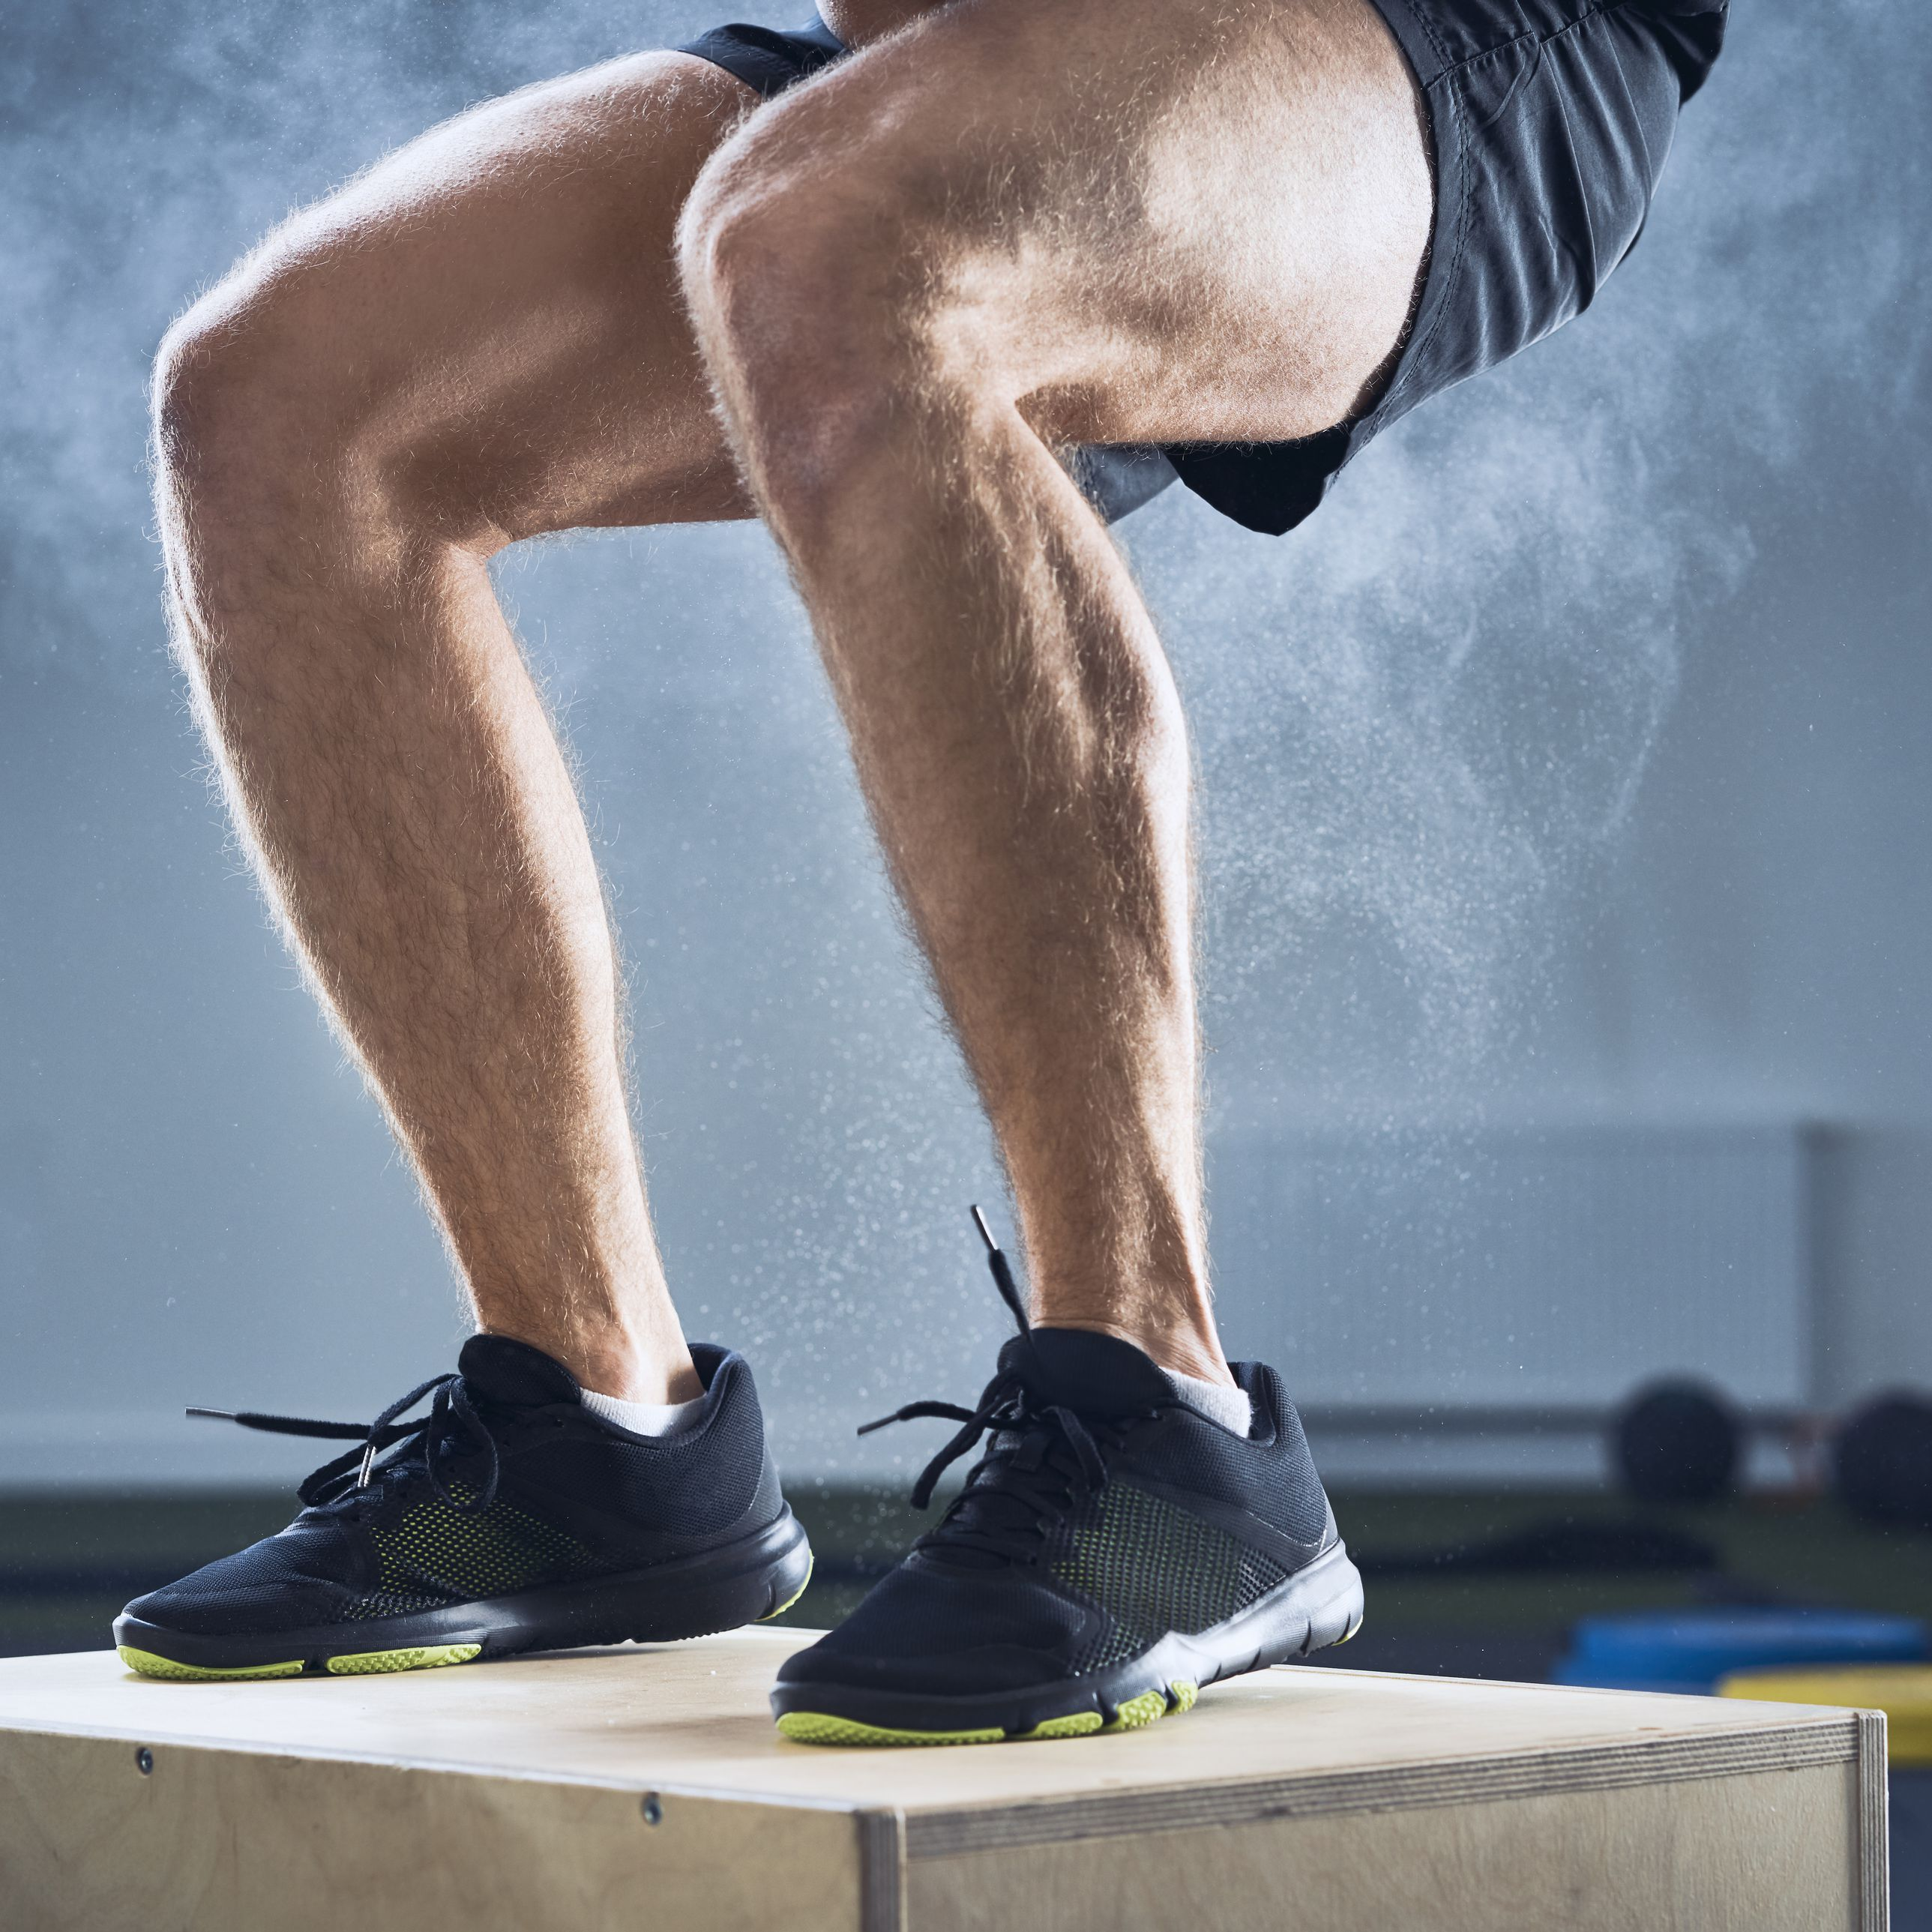 9fe0bae80e93 The 7 Best CrossFit Shoes for Men of 2019